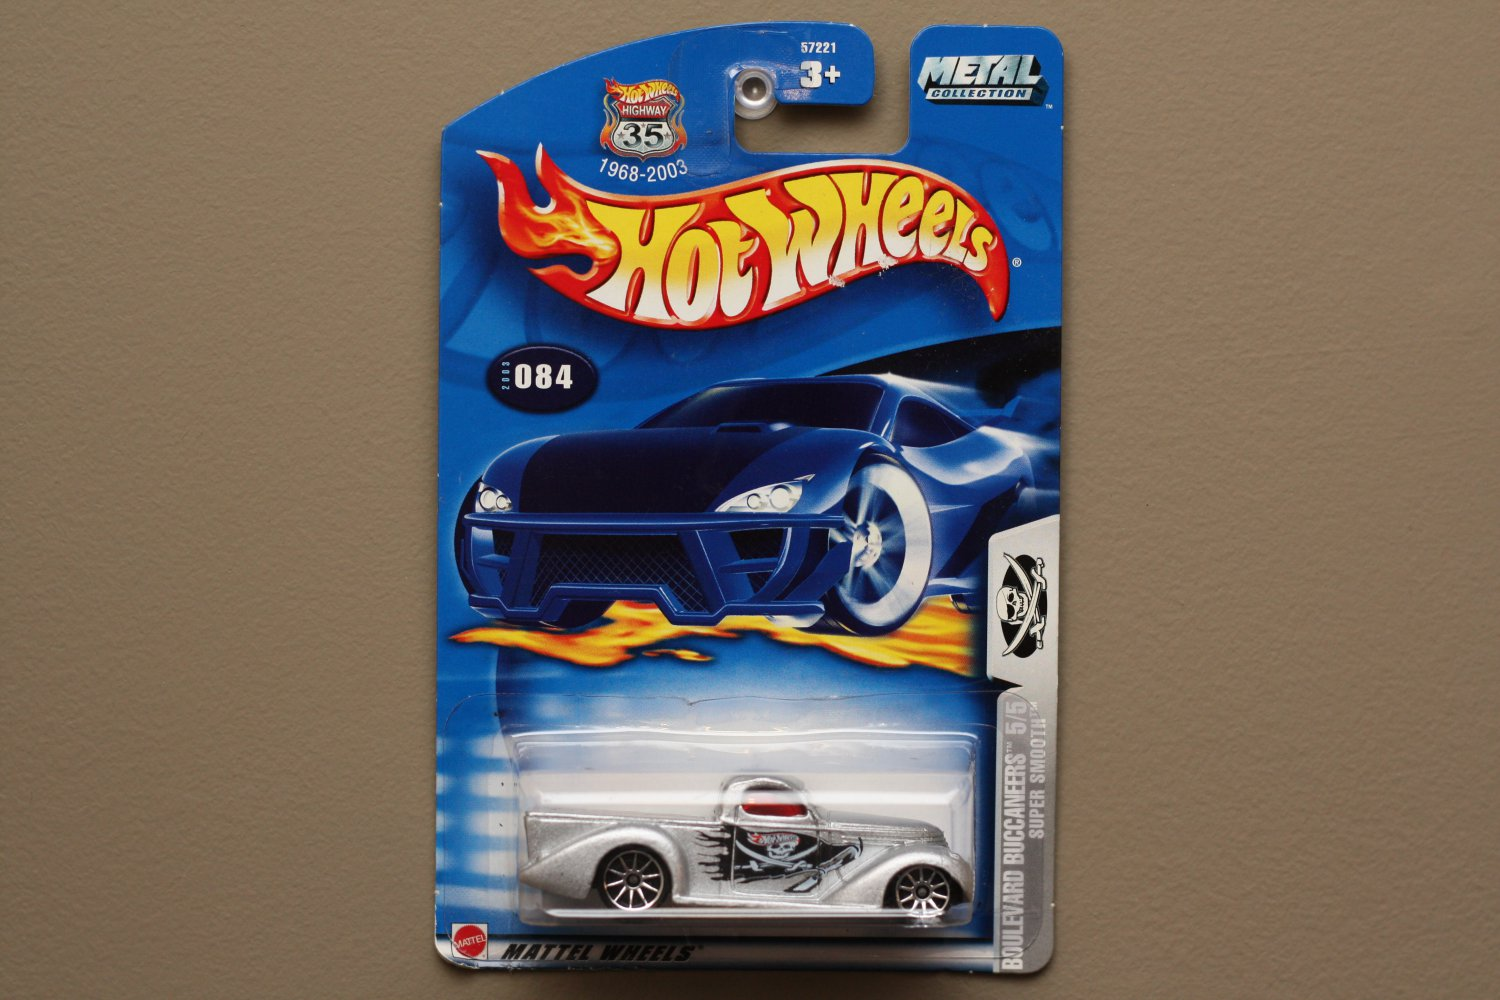 Hot Wheels 2003 Boulevard Buccaneers Super Smooth (silver) (SEE CONDITION)